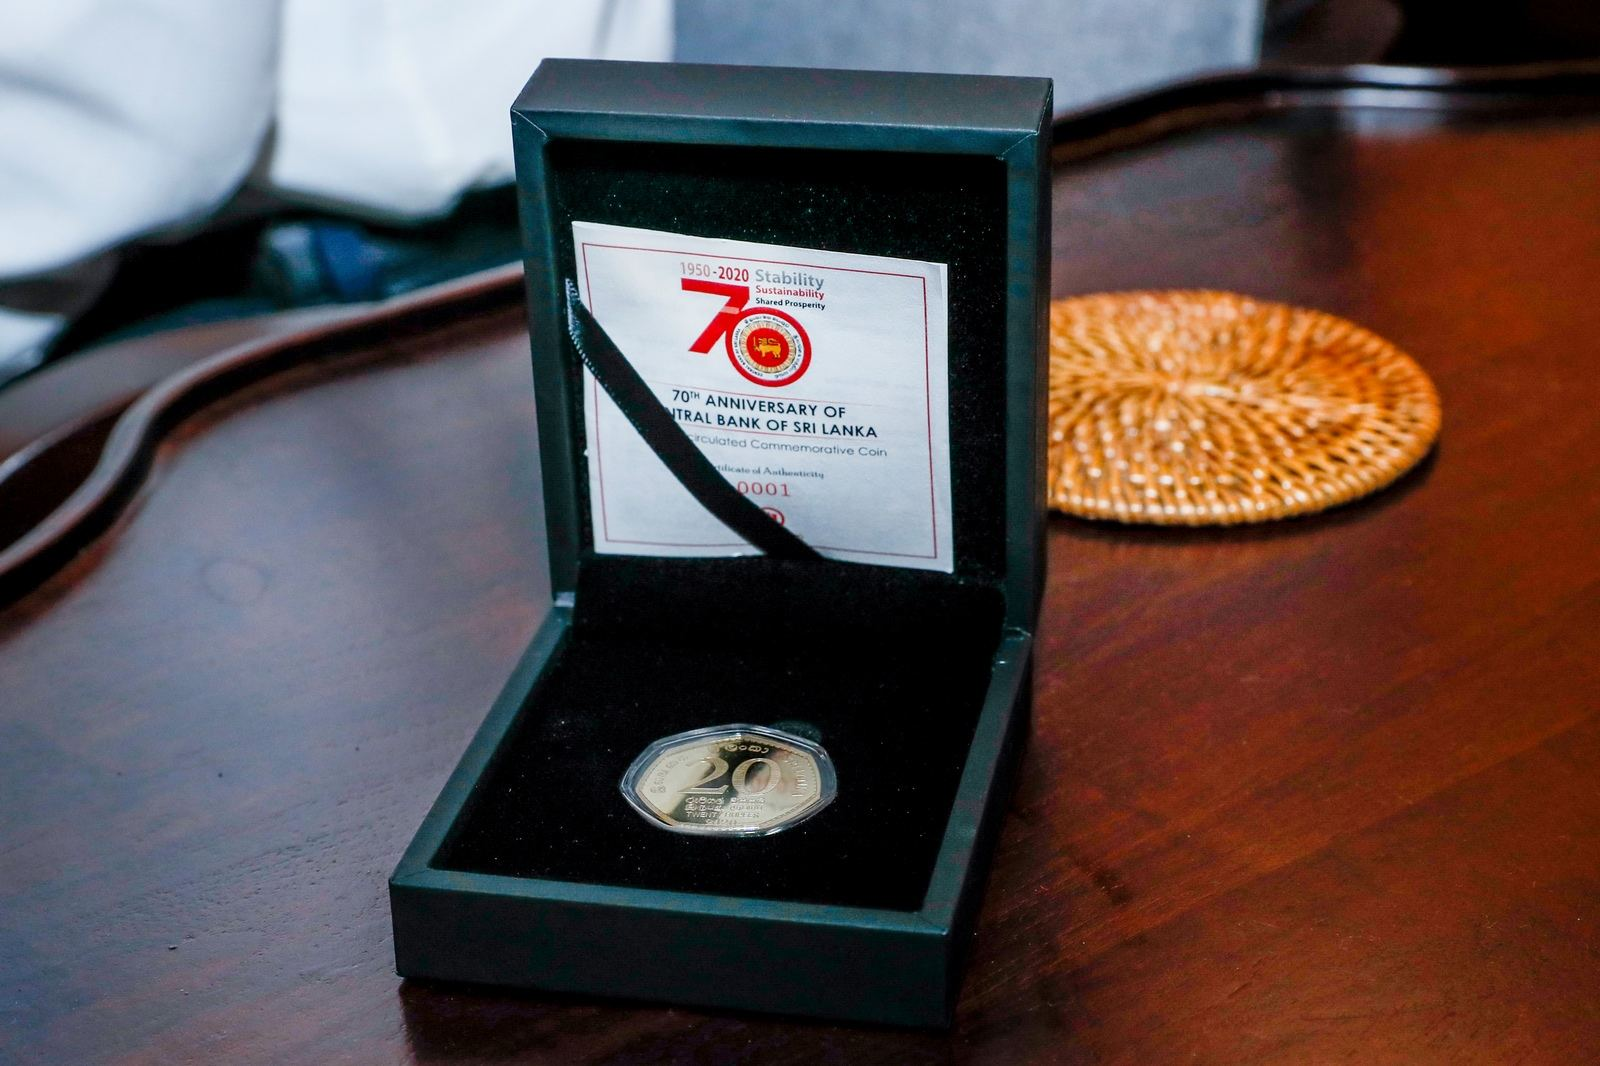 Rs. 20 Commemorative coin to mark Anniversary of CBSL presented to President  | Daily News